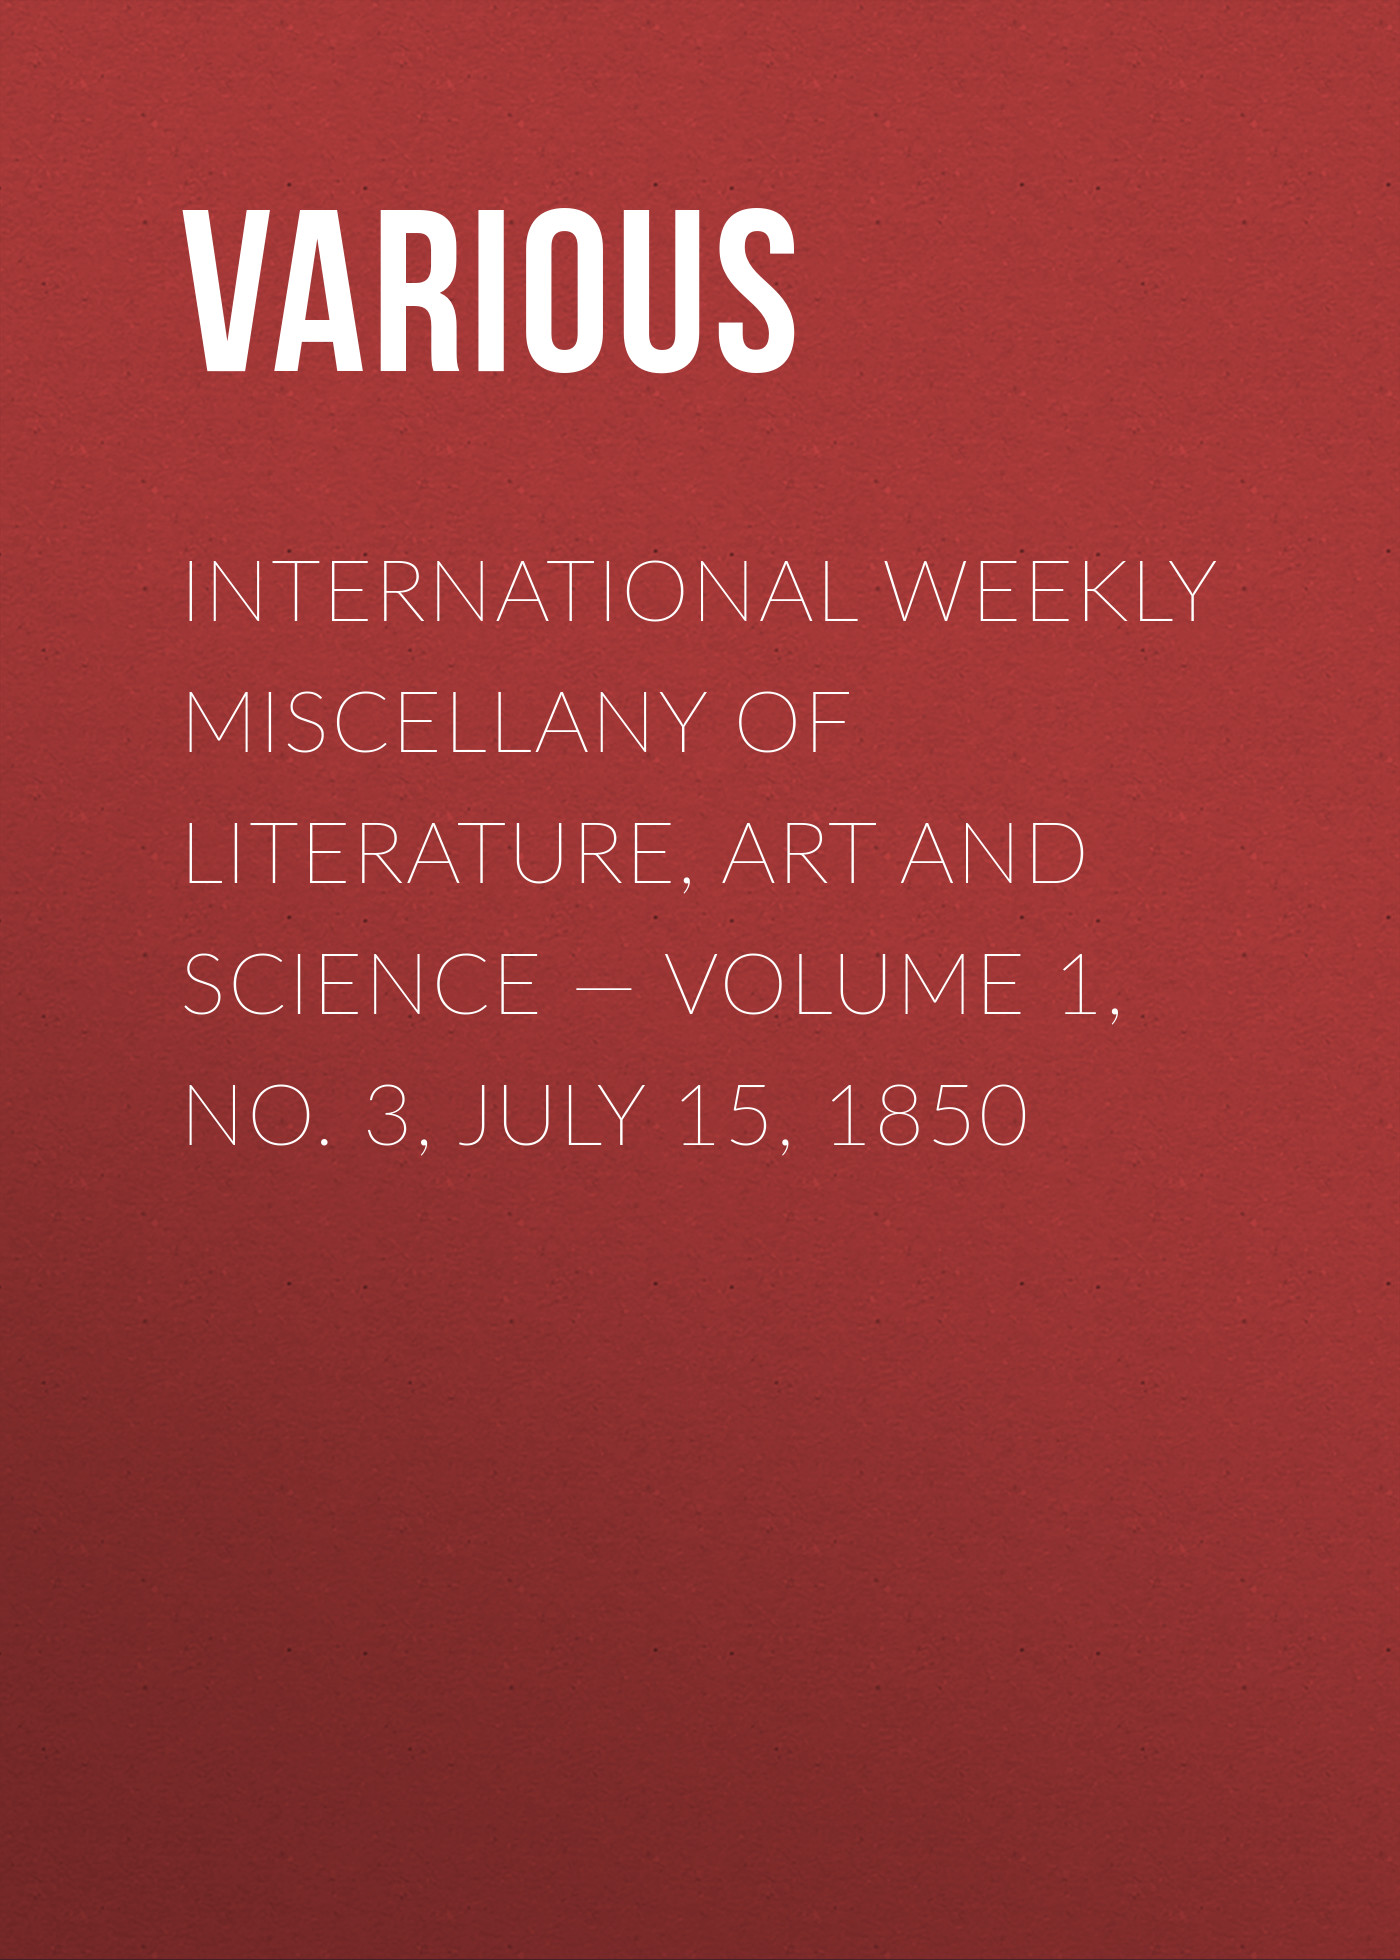 Various International Weekly Miscellany of Literature, Art and Science — Volume 1, No. 3, July 15, 1850 журнал international science project